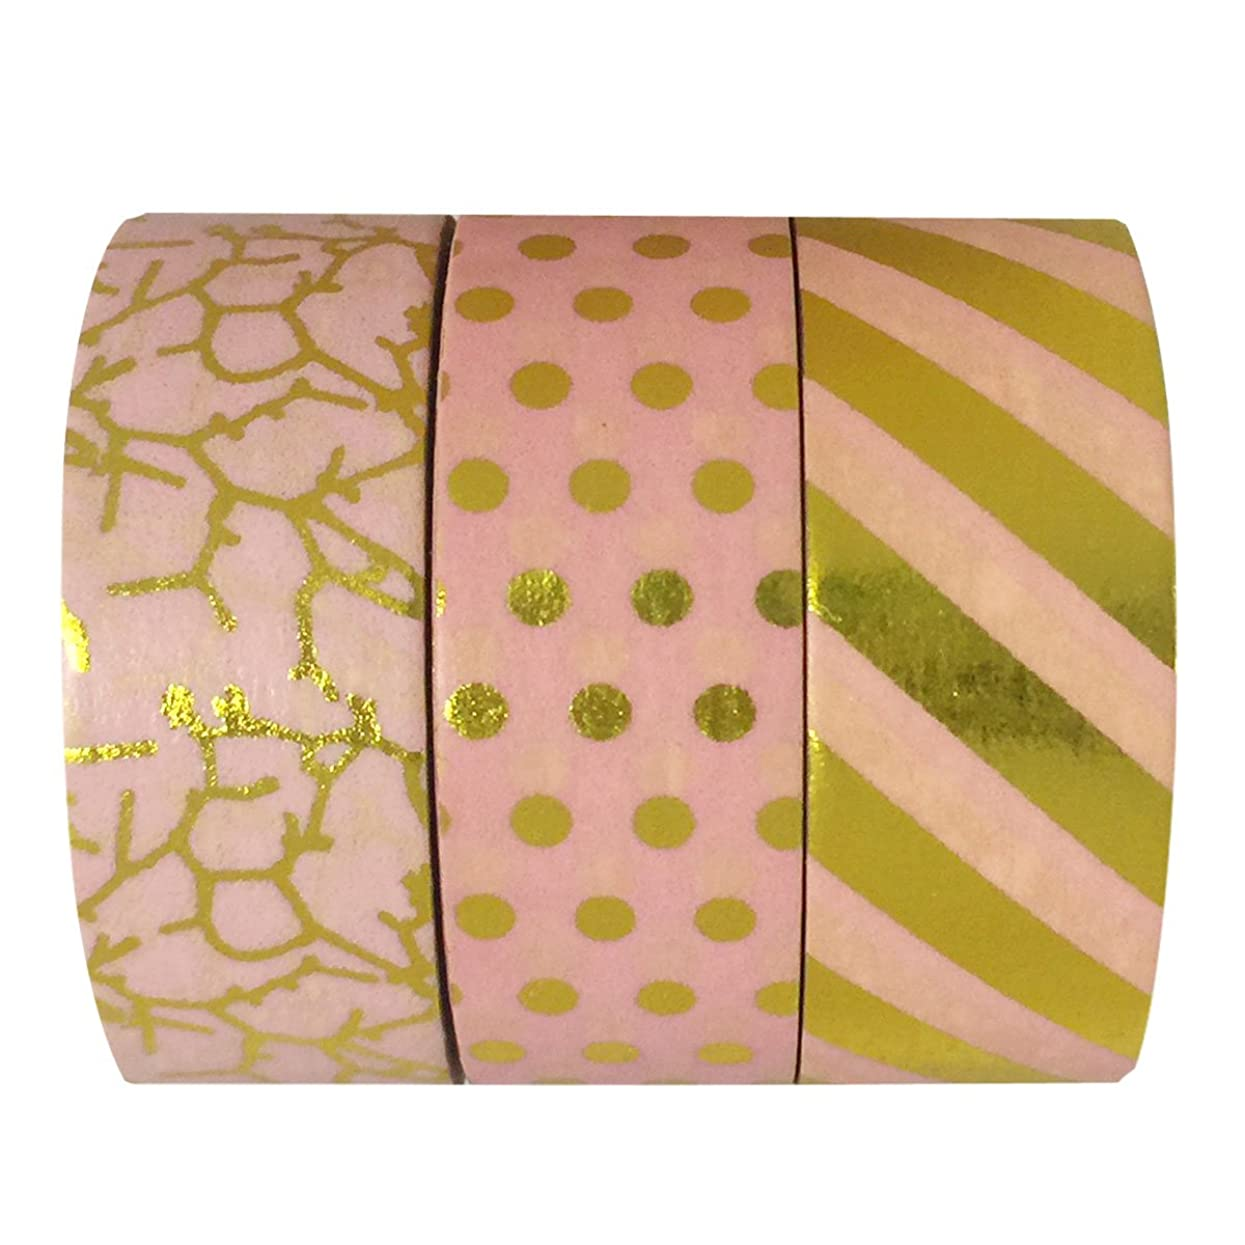 allydrew A70118 10M L x 15mm W Set of 3 Washi Masking Tape, Fun with Pink